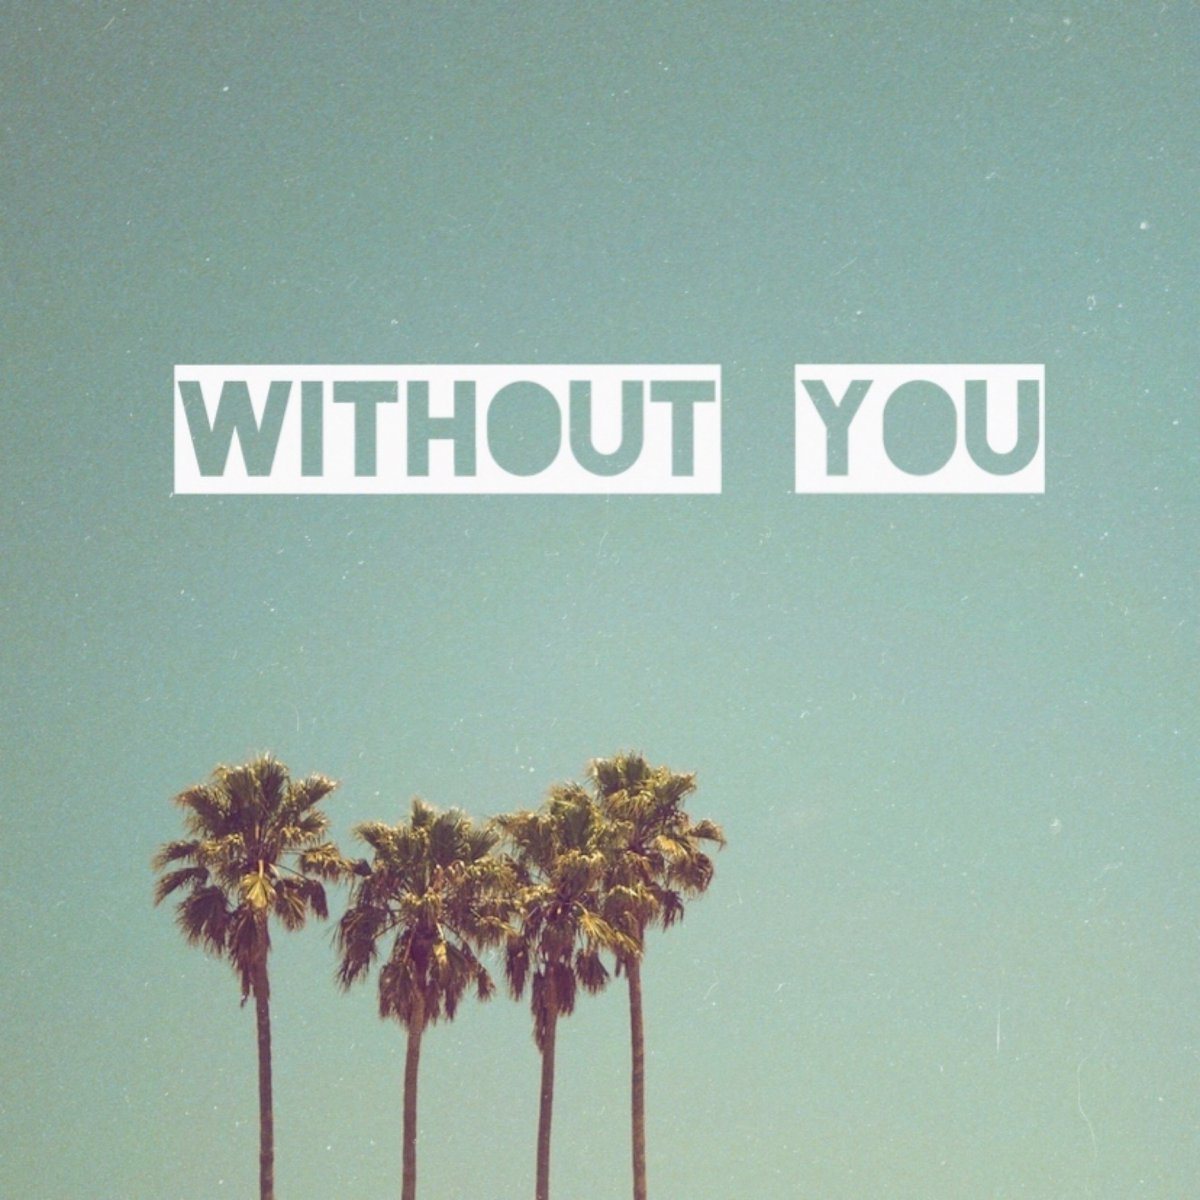 """***NEW MUSIC*** Listen to the new @jordanbmitchell single """"Without You"""" now: https://t.co/fR0gKzbzK2 https://t.co/BASwiOHFFA"""